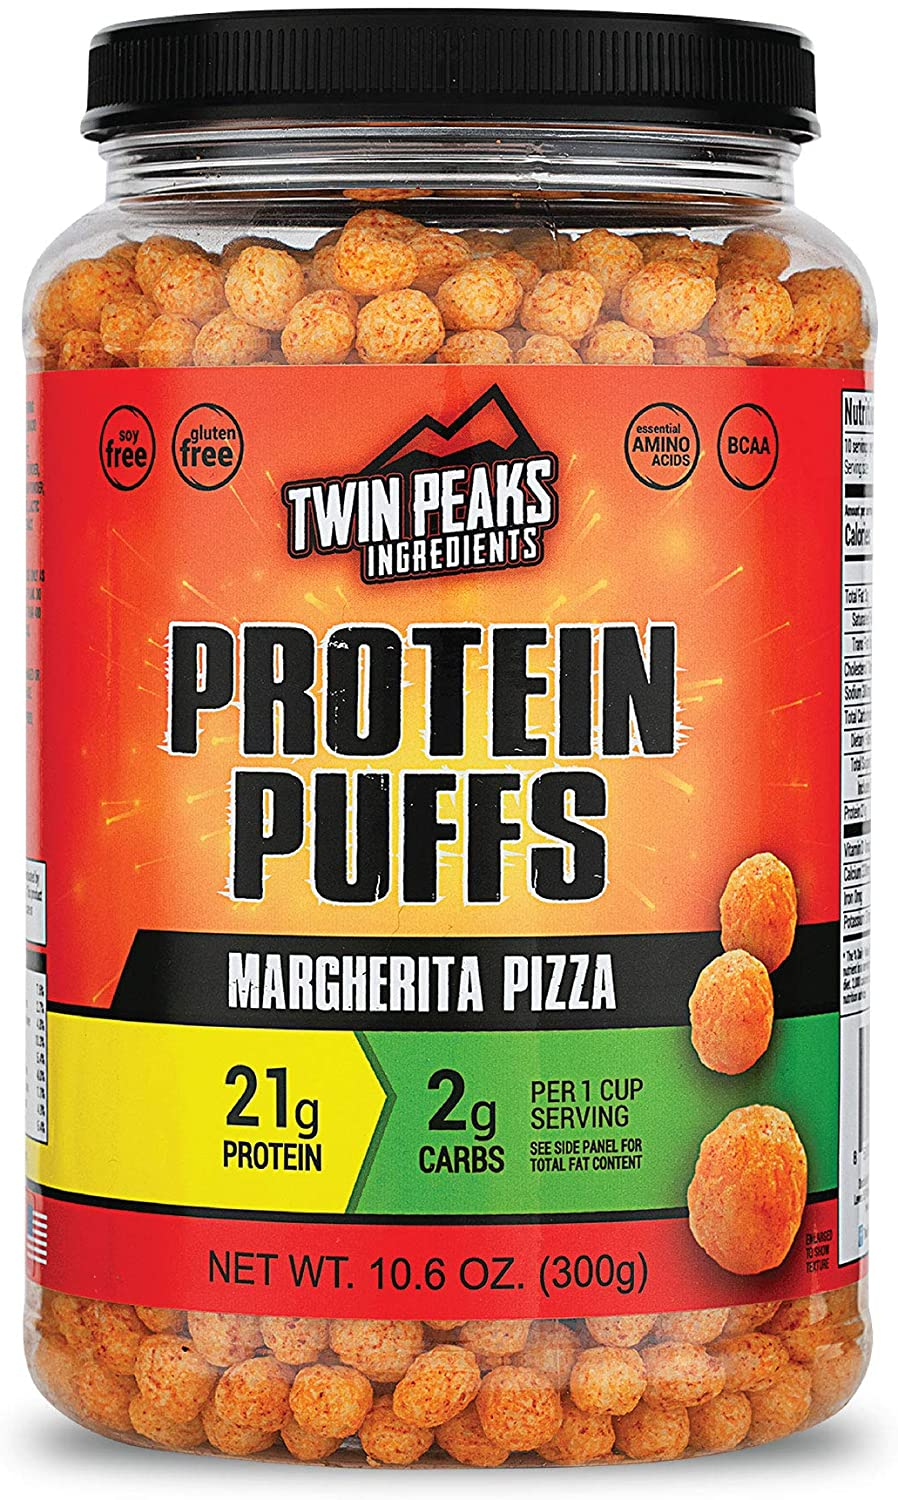 Twin Peaks Low Carb, Keto Friendly Protein Puffs, Margherita Pizza (300g, 21g Protein, 2g Carbs)